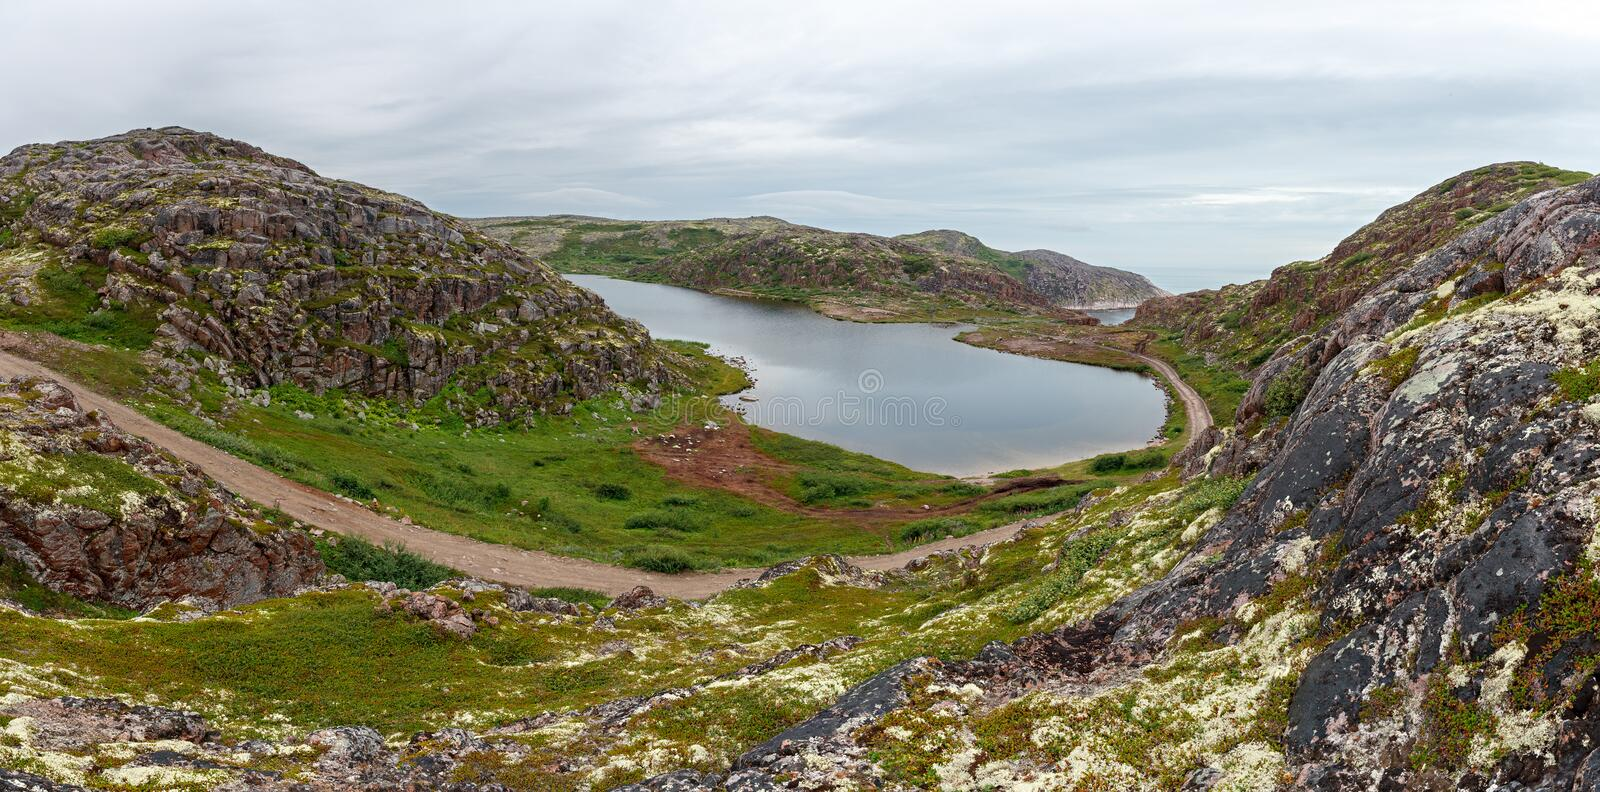 Lake with clean, fresh water on the shore of the Barents sea. stock photo